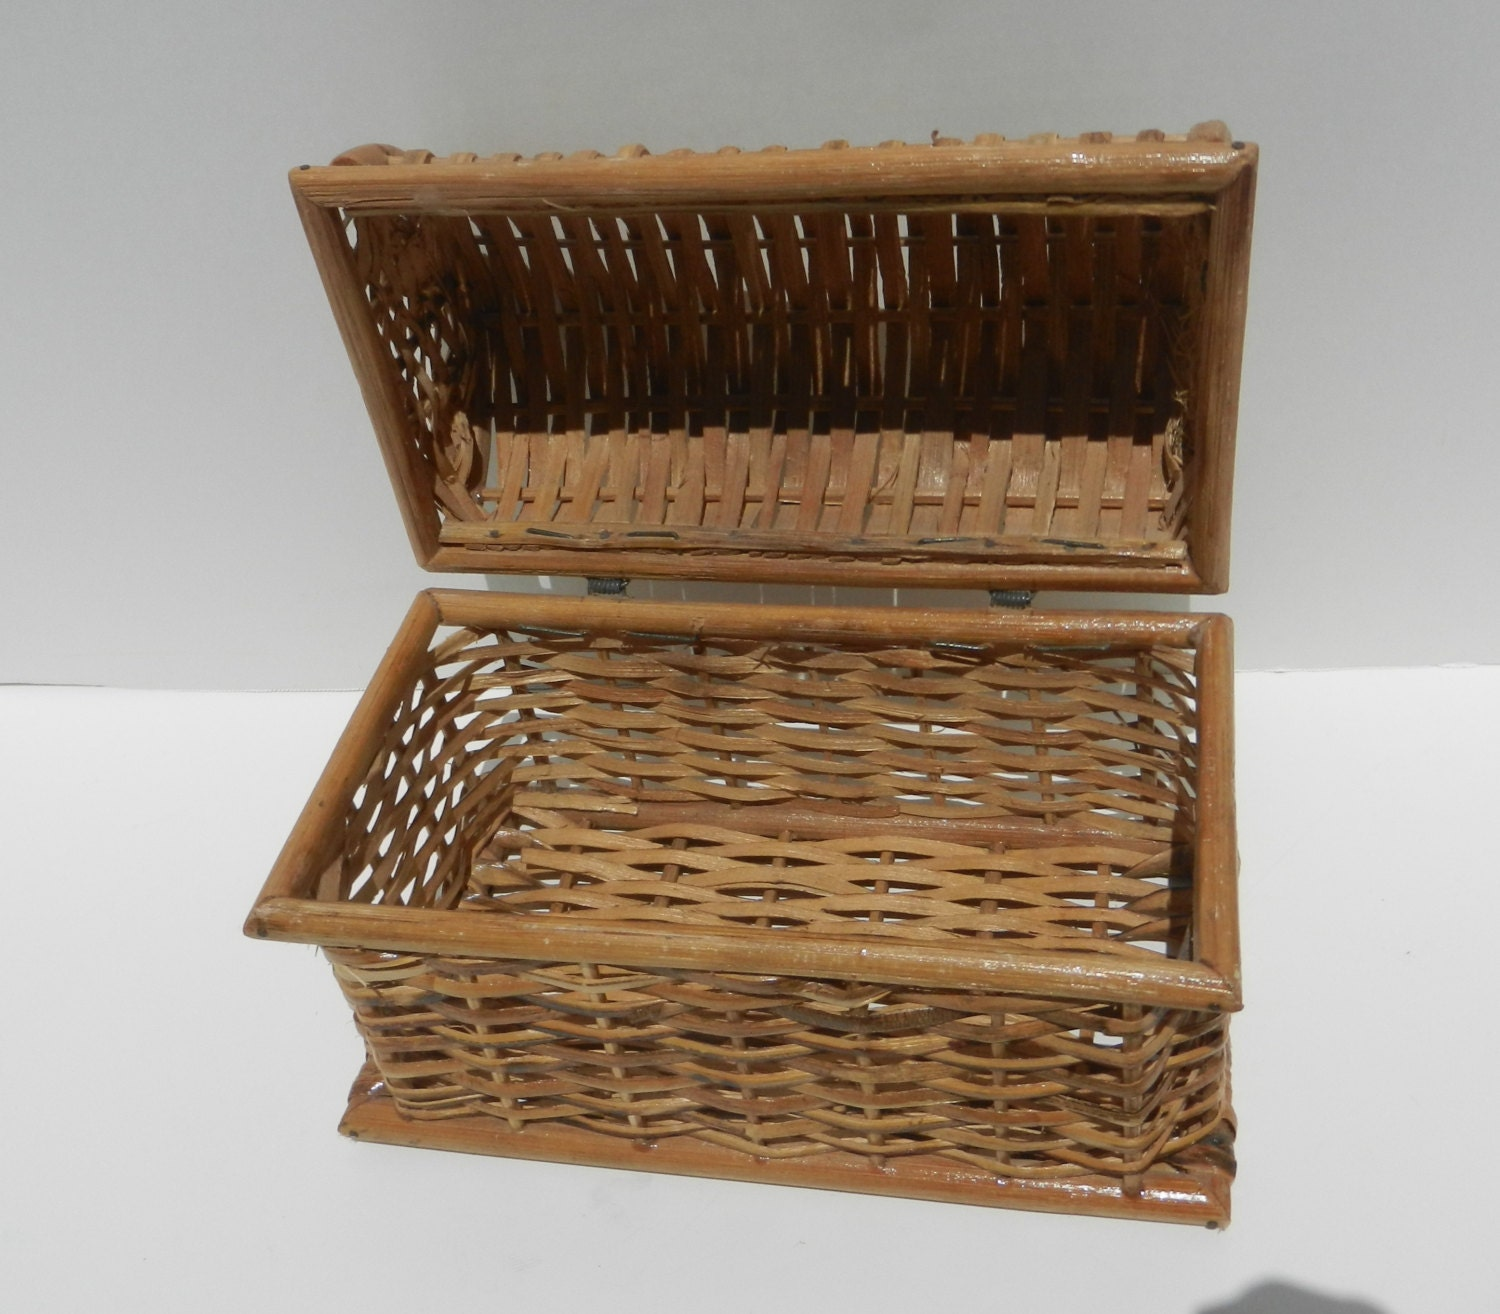 Wicker Basket With Hinged Lid : Small vintage wicker chest box with hinged lid for storage